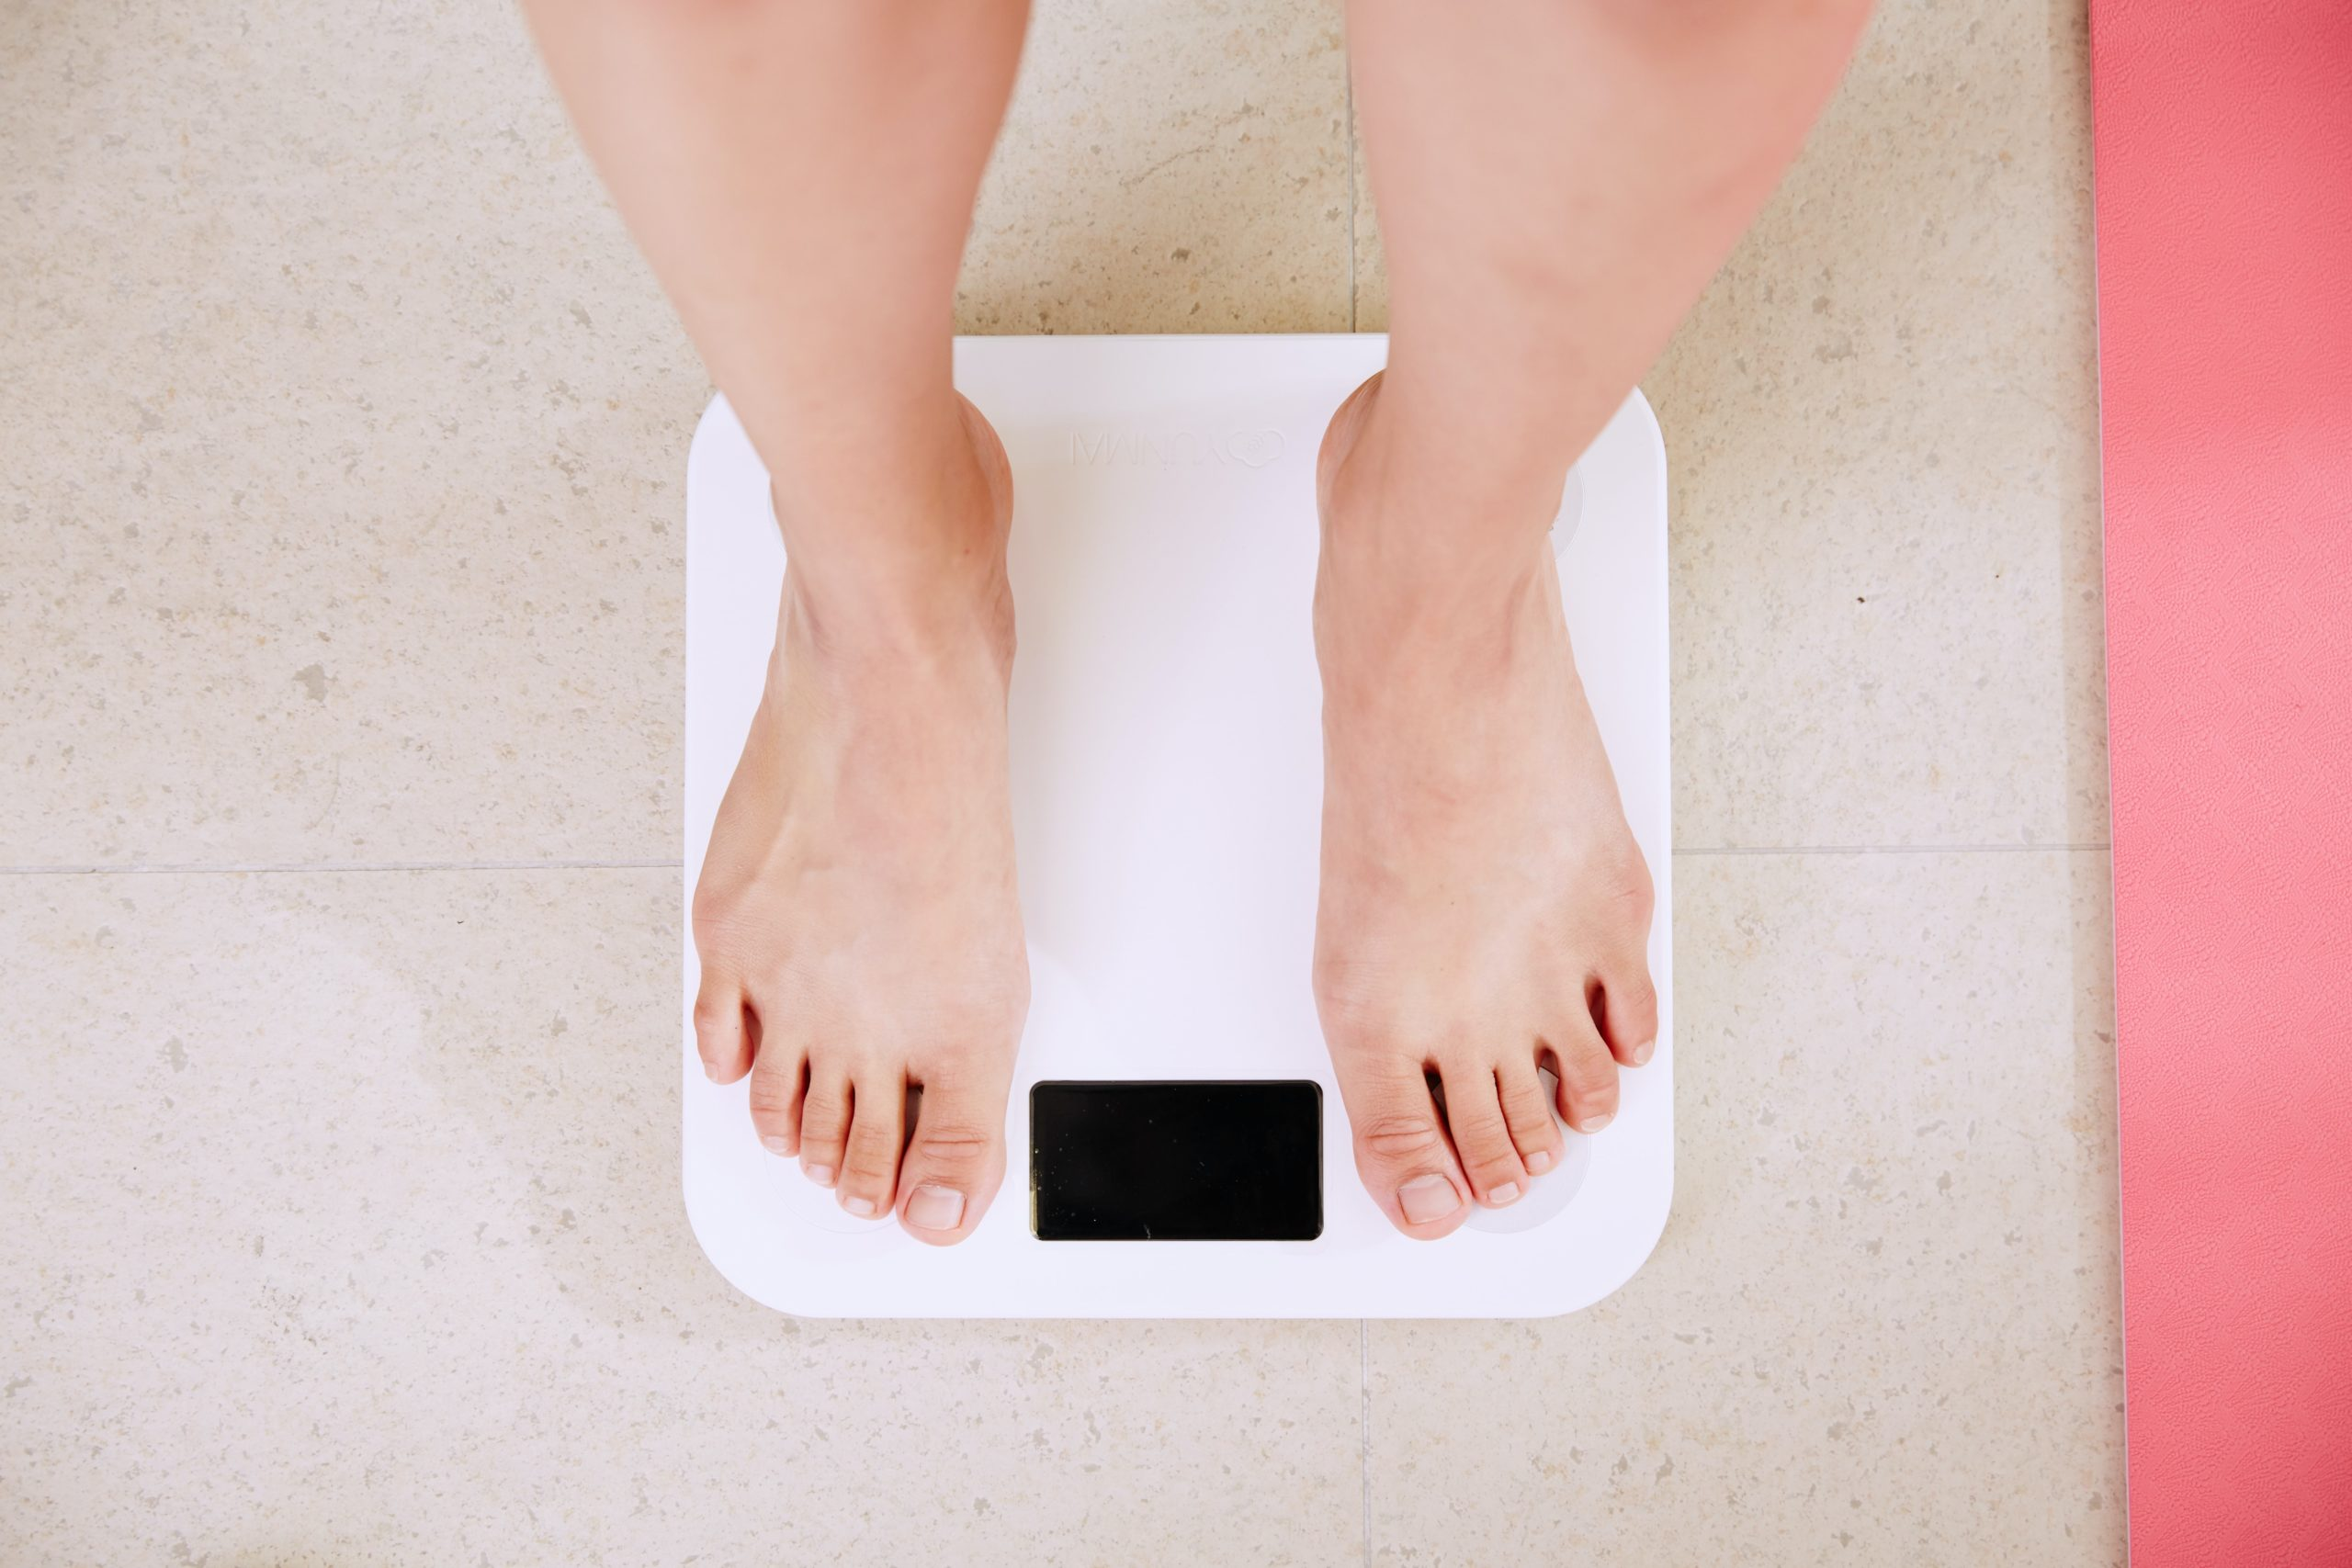 Biggest Popular Weight Loss Myths